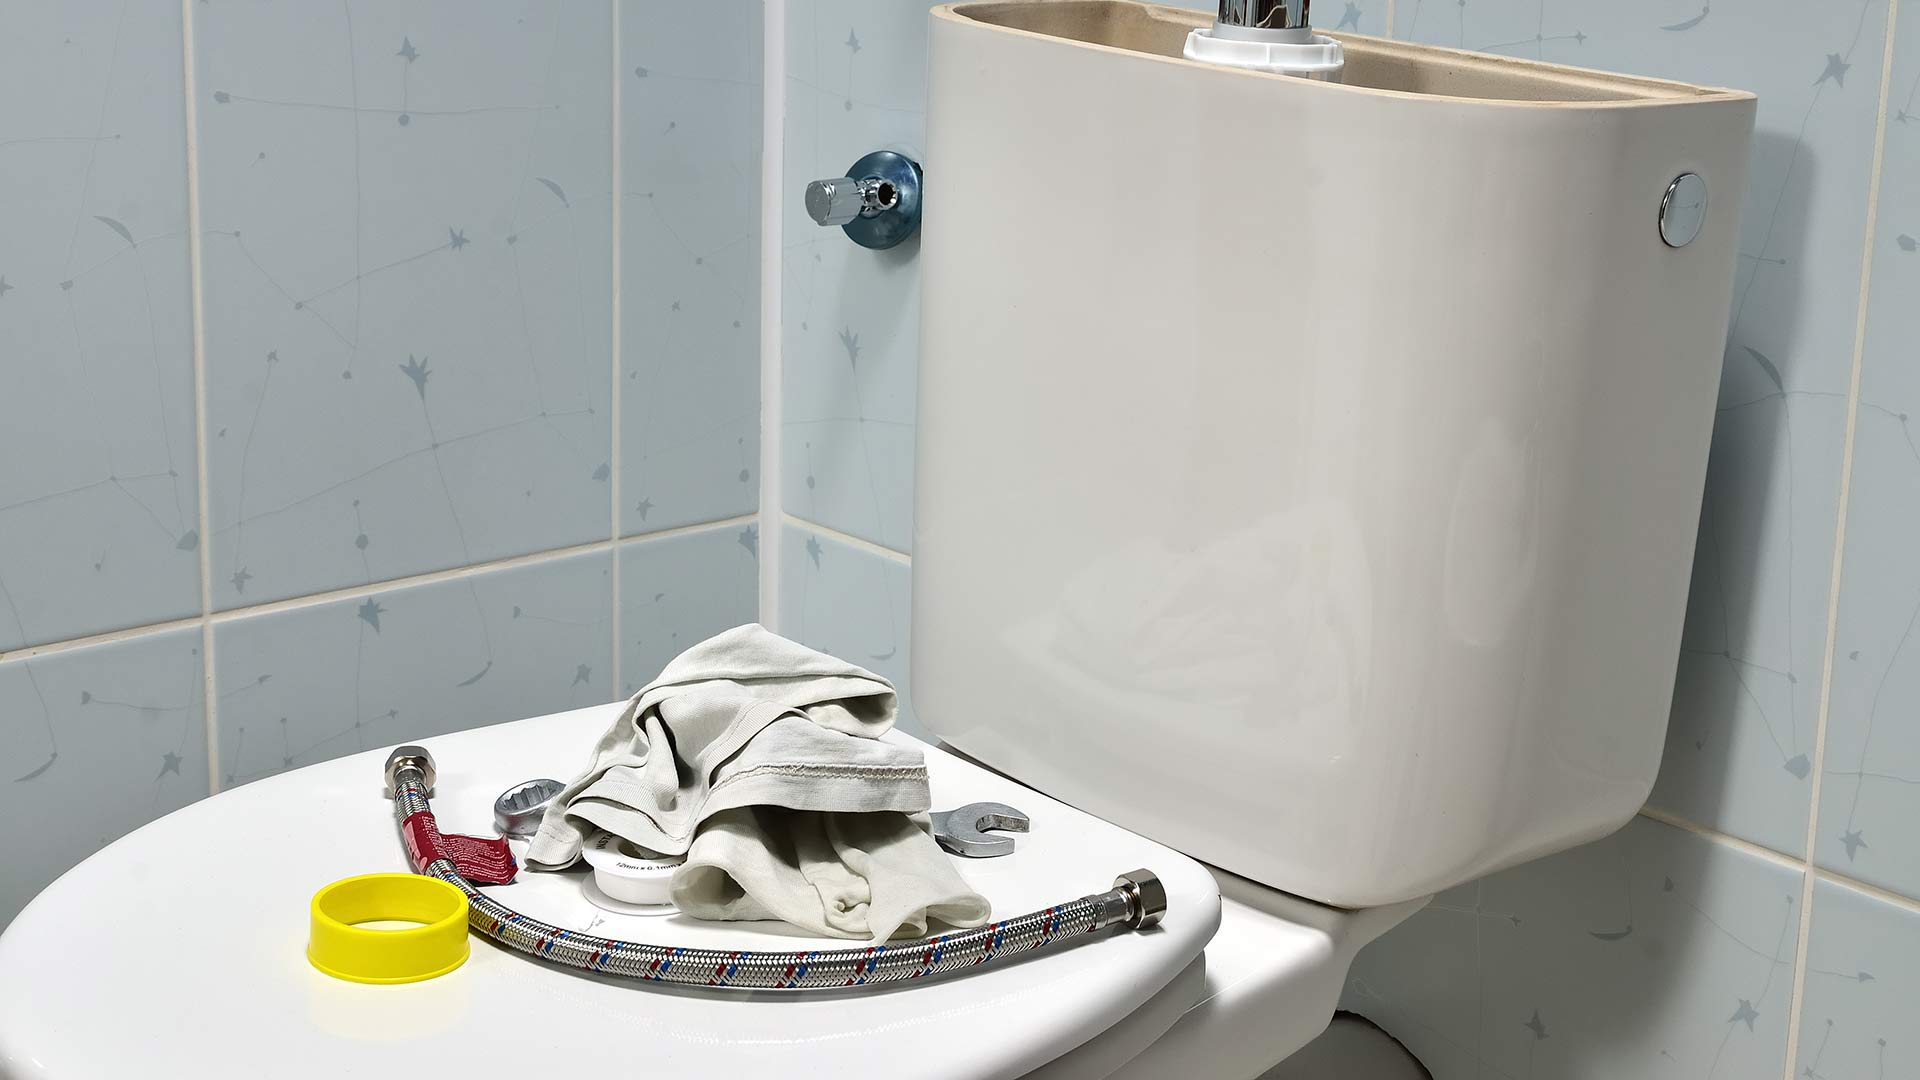 6 Things You Should Never Flush Down Your Toilet